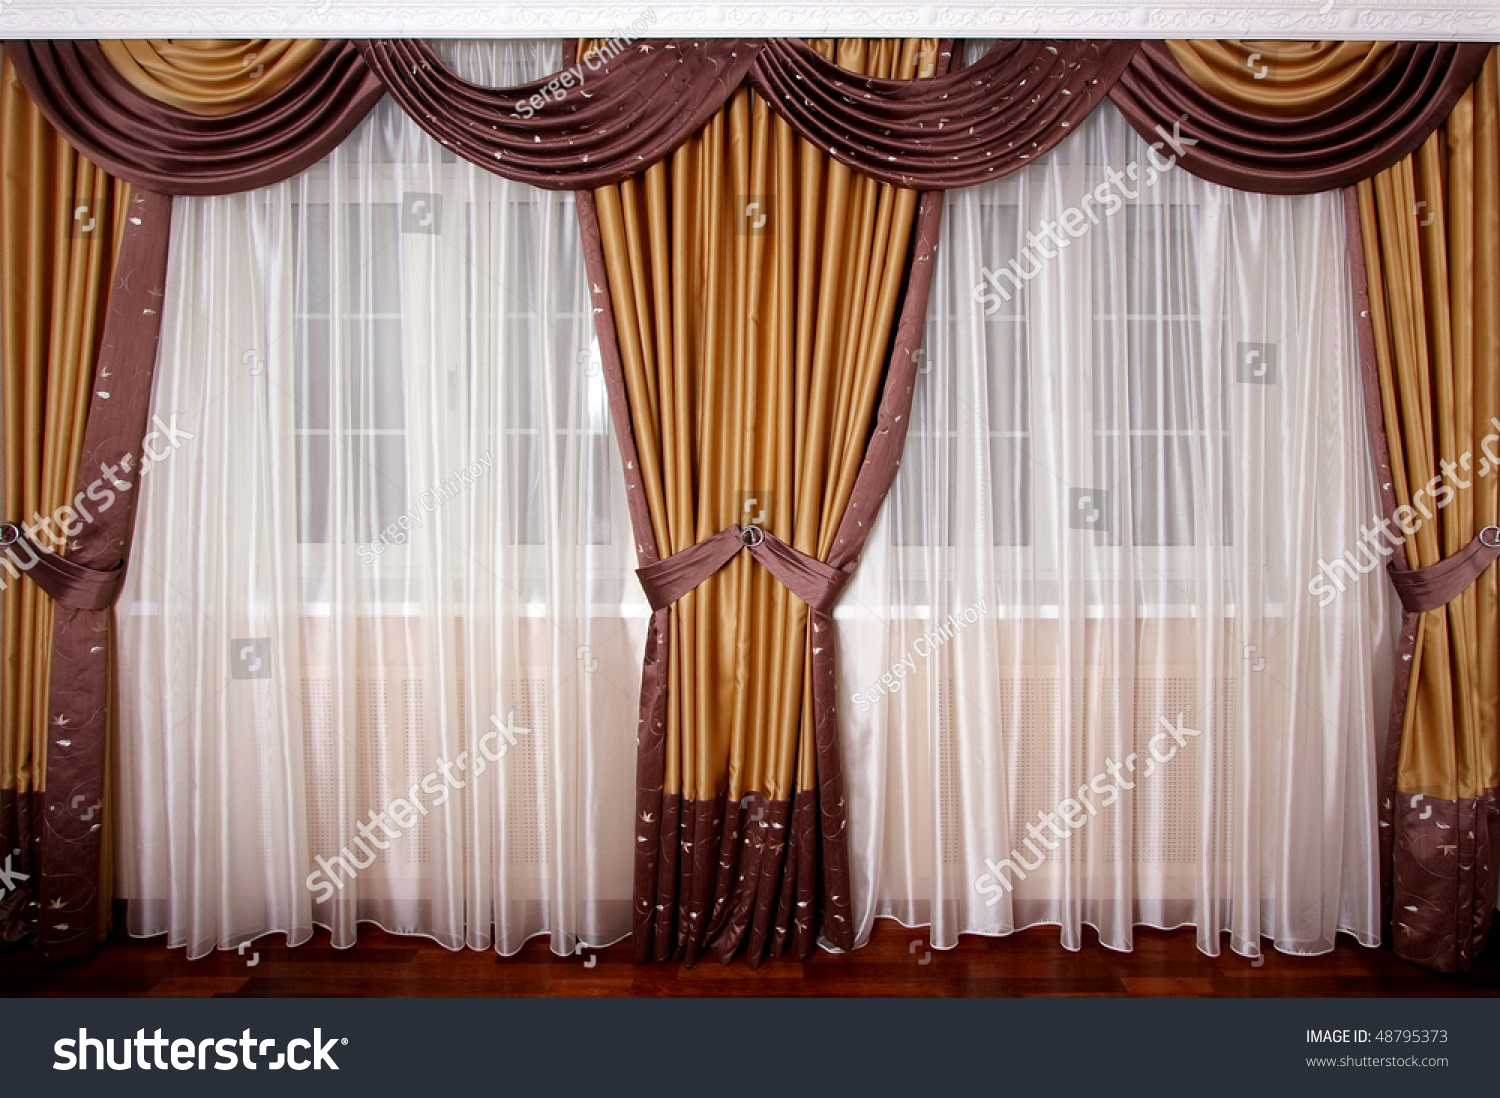 Go gold curtains and valances - Wall Colors That Go With Grey Floor Inspirational Design Free Home